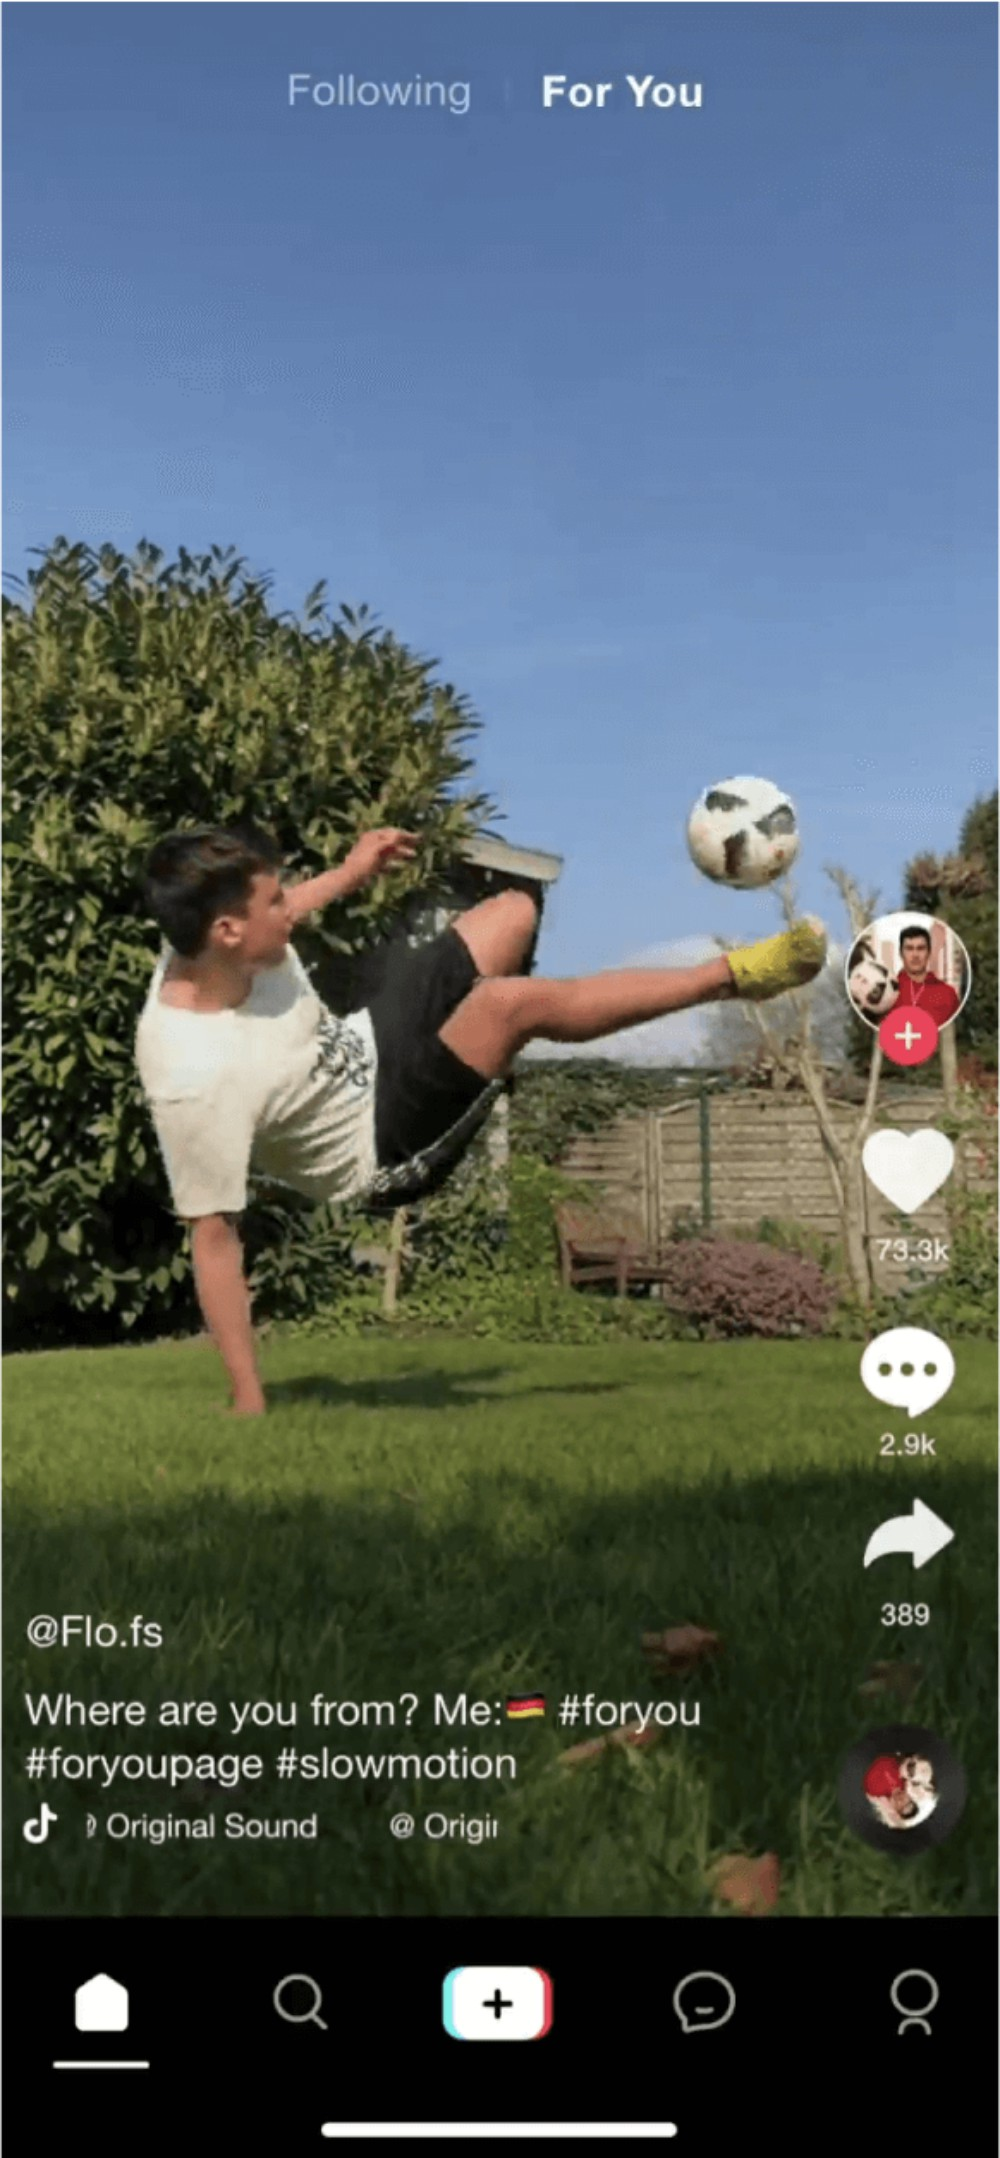 Teen-friendly viral video app TikTok launched TikTok for Business to help brands court Gen Z on a platform that rivals Instagram and Snap.